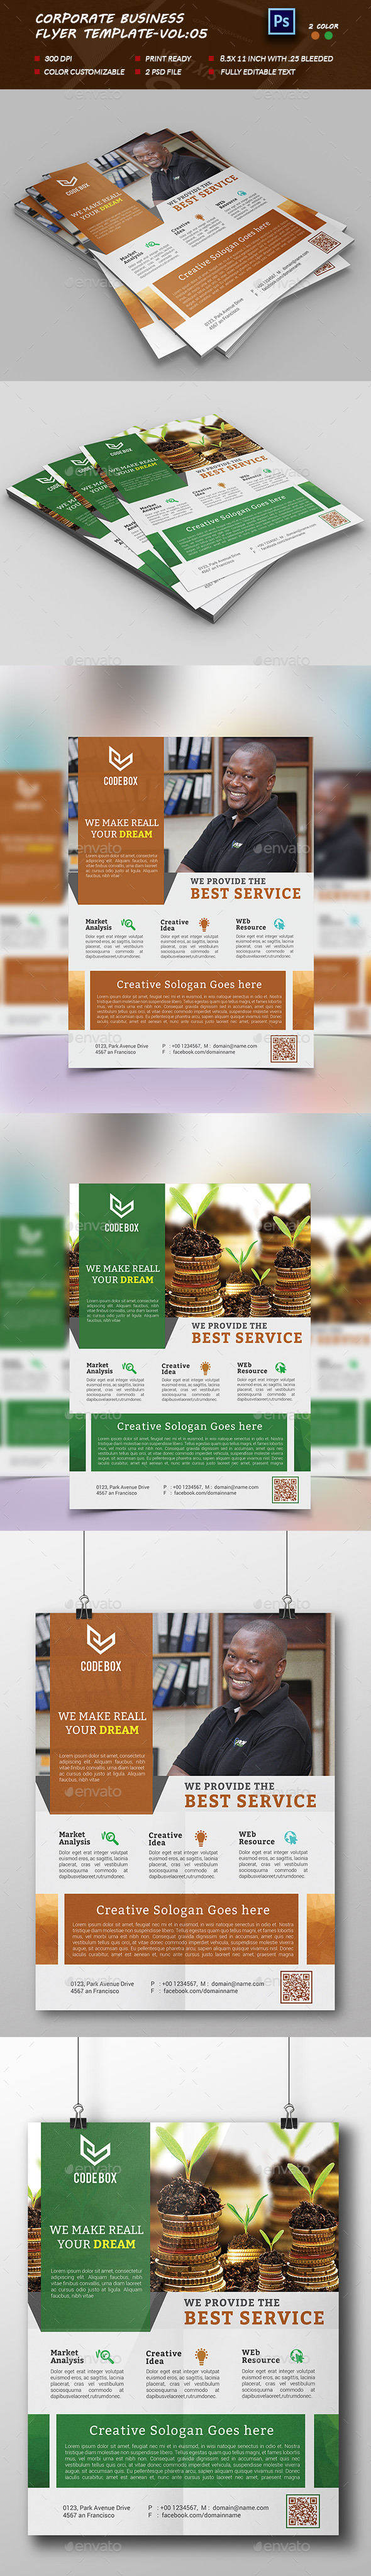 Corporate business Flyer Template vol:05 - Corporate Flyers